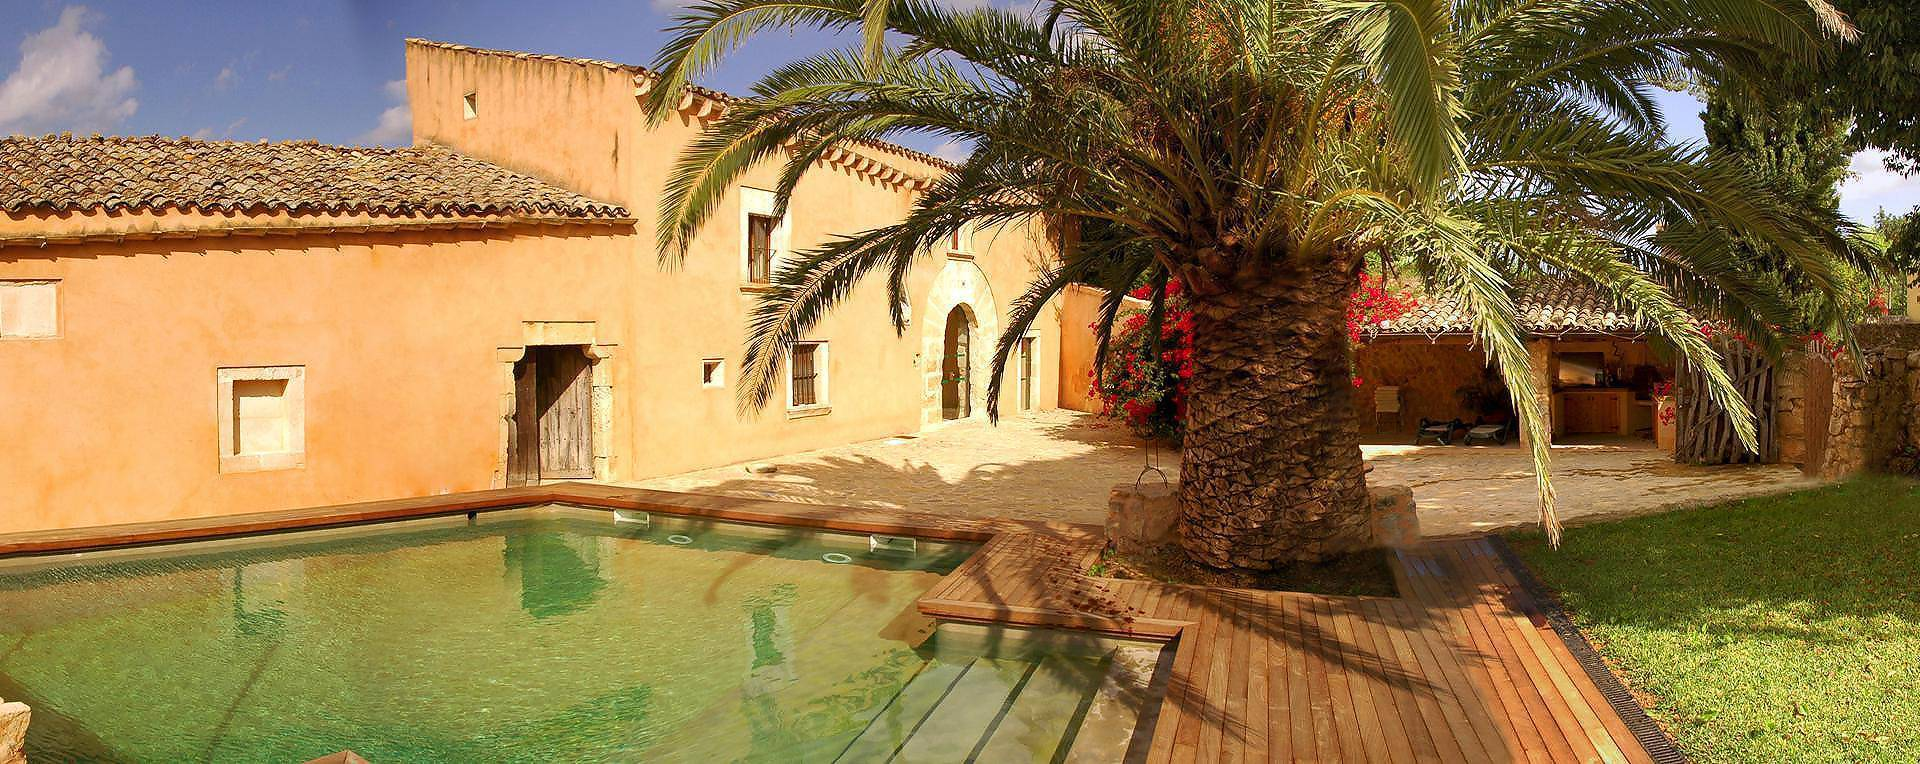 01-08 Traditional Holiday Home Mallorca north Bild 2